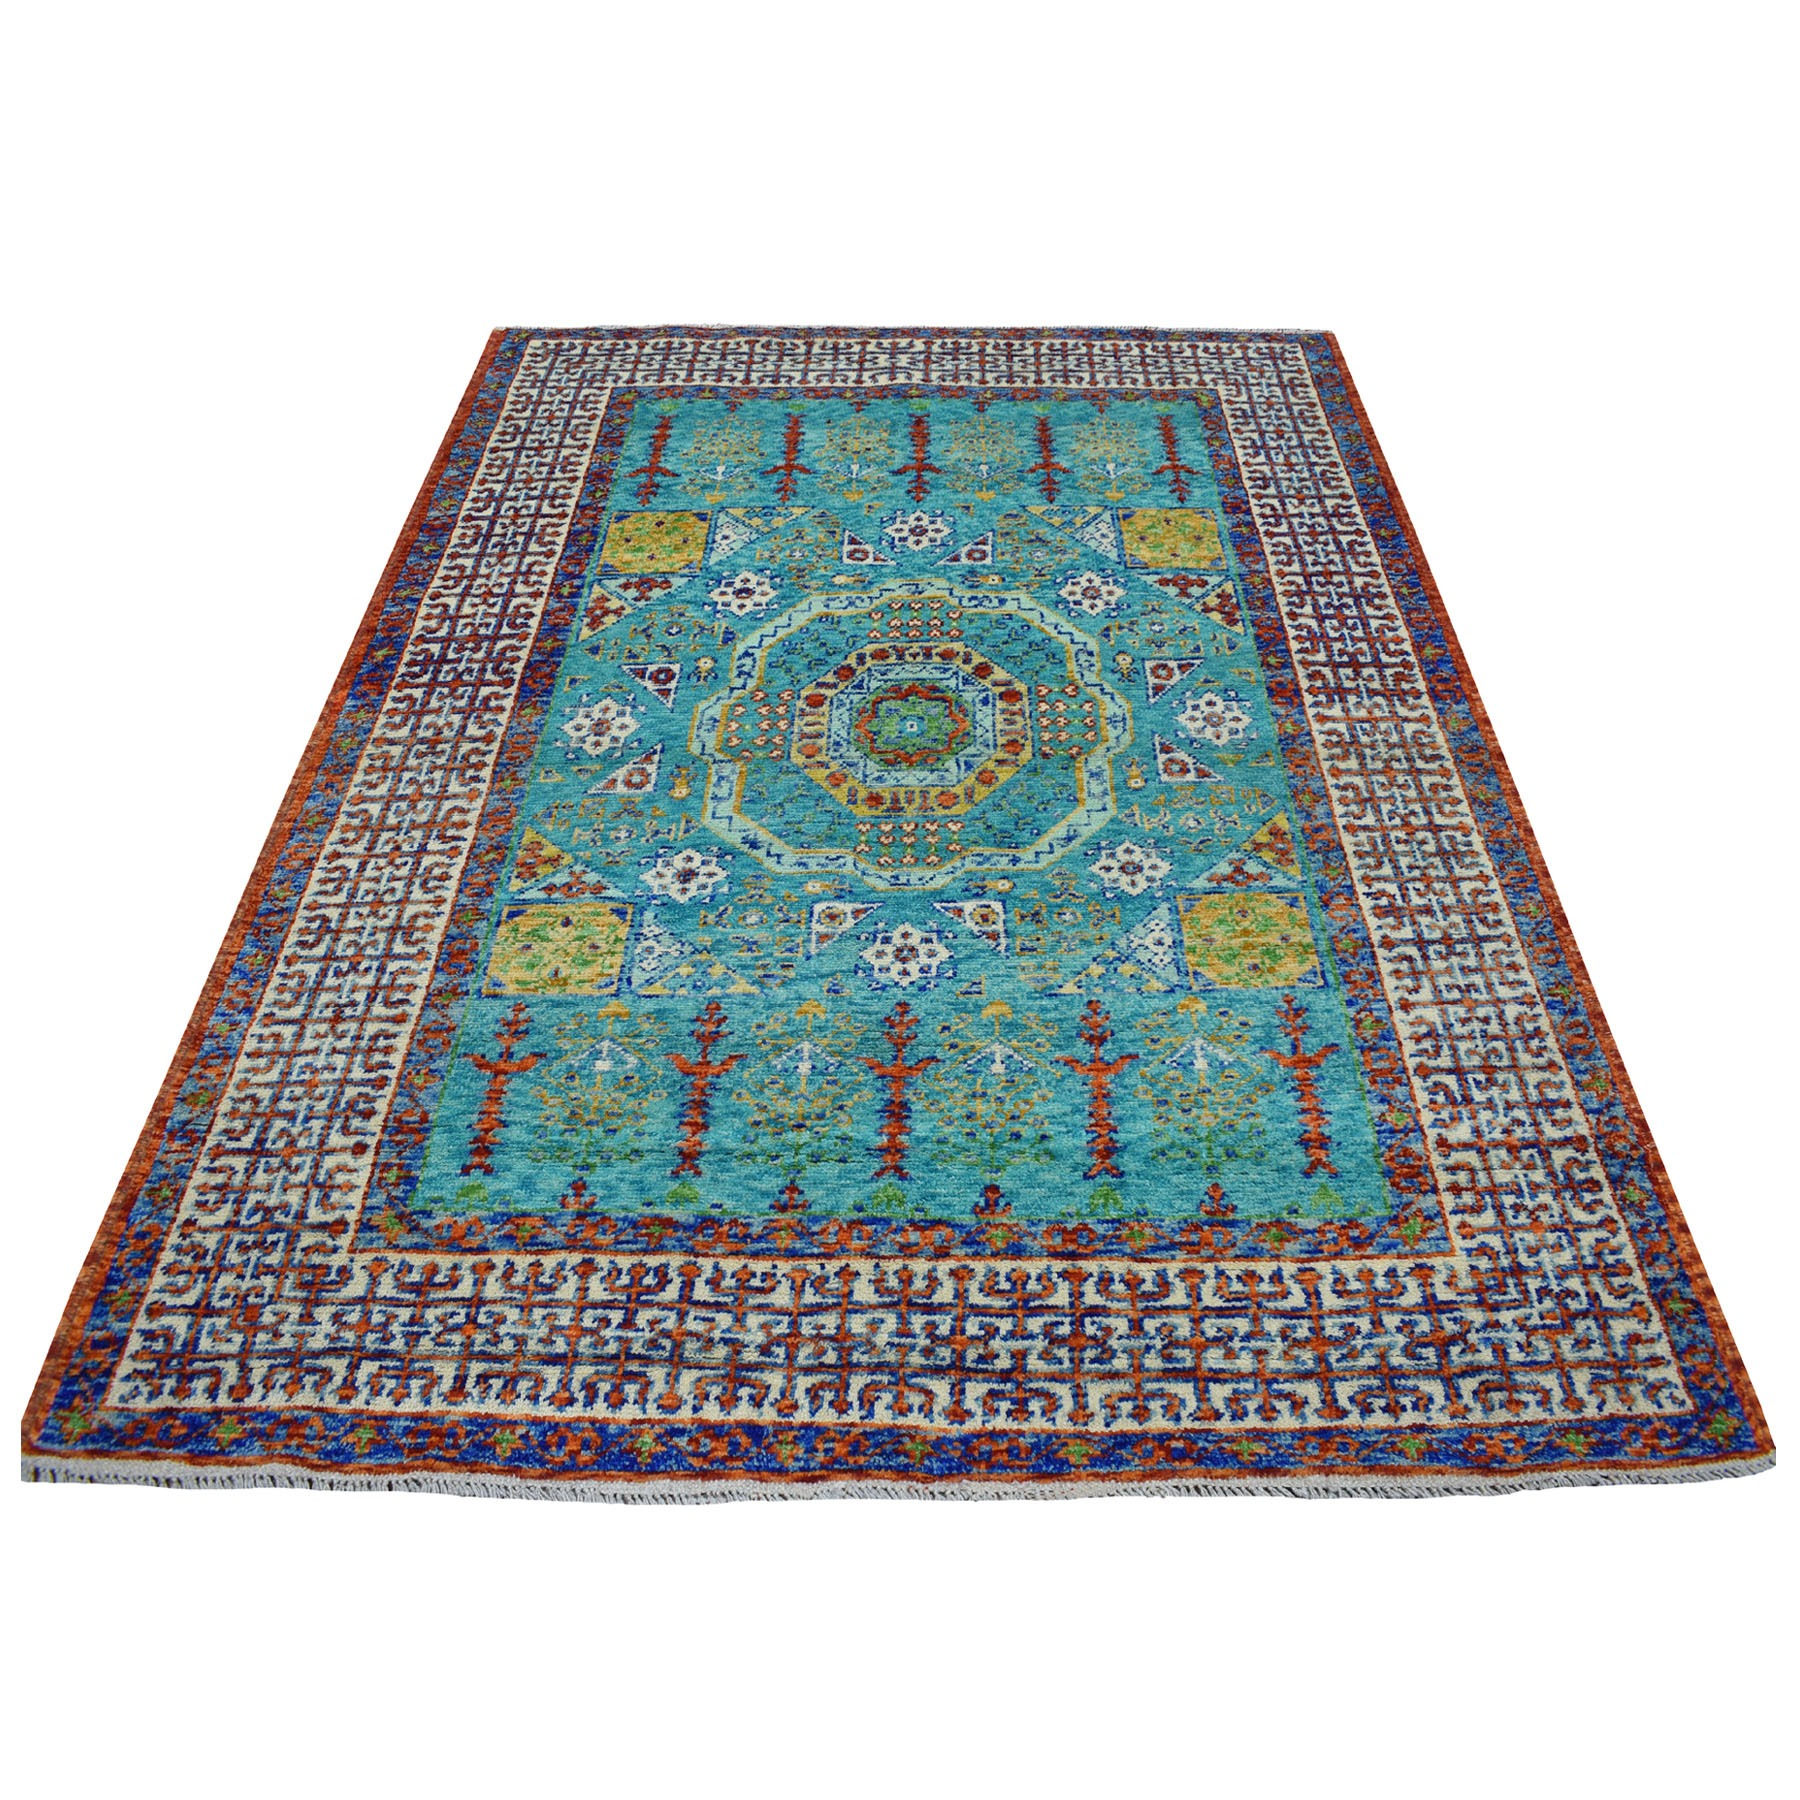 "6'x7'10"" Green Mamluk Design Colorful Afghan Baluch Hand Woven Pure Wool Oriental Rug"